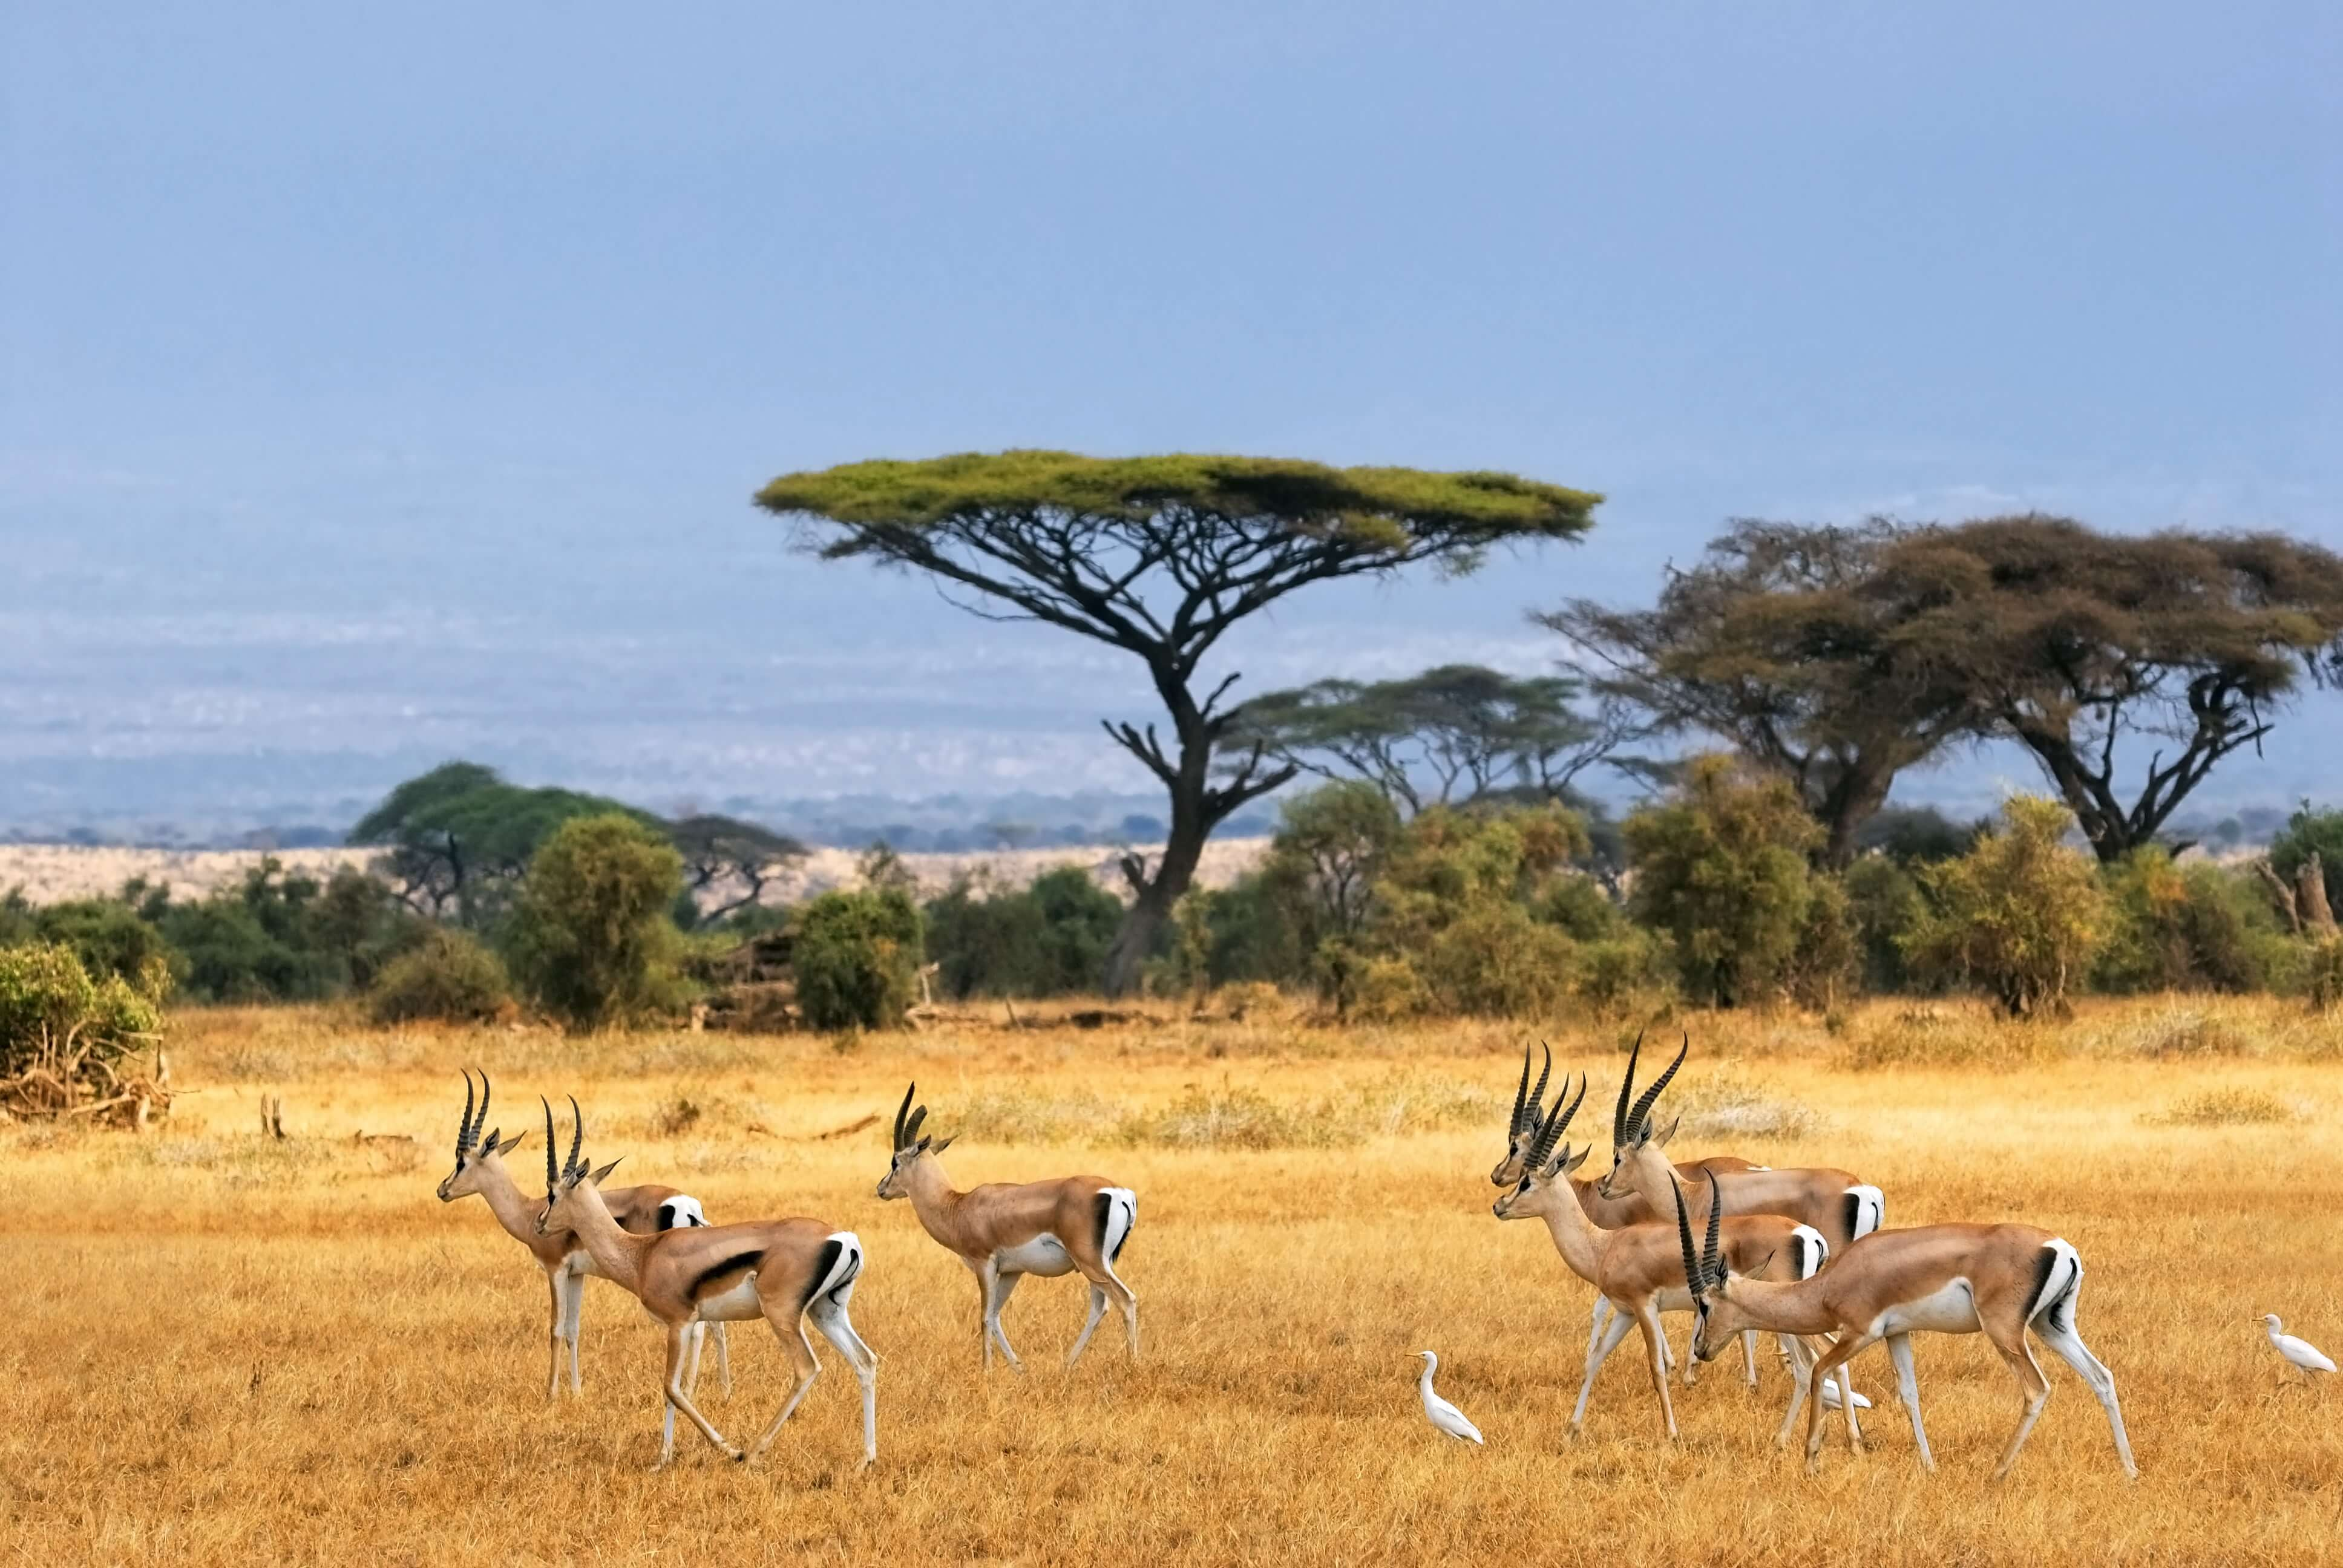 African Landscape with Gazelles - Nature Parks in Africa